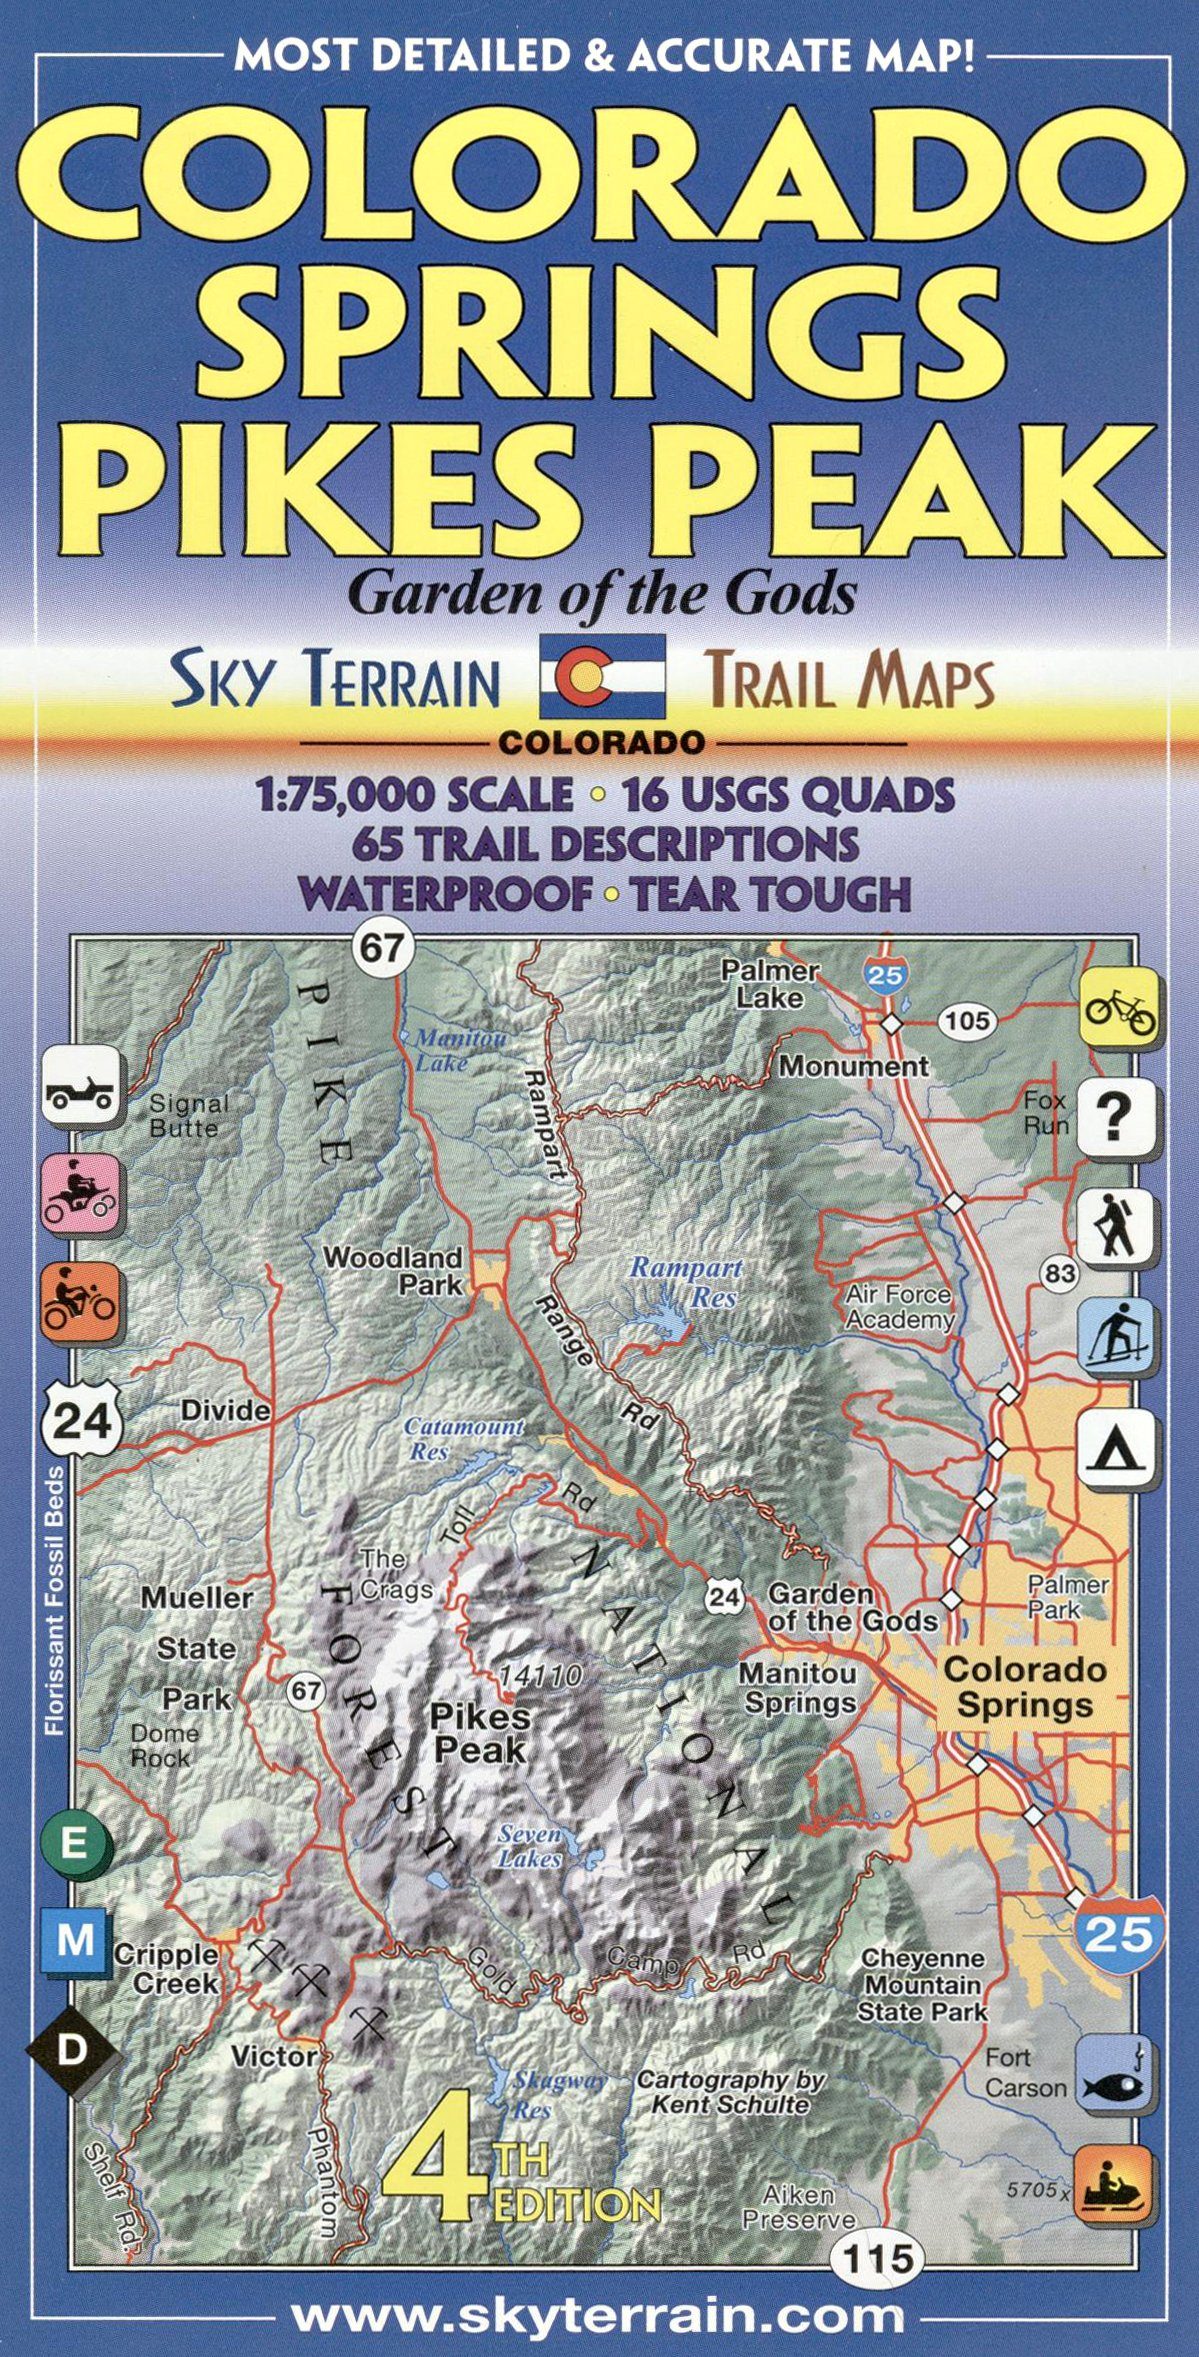 colorado springs  pikes peak trail map th edition kent schulte amazoncom books. colorado springs  pikes peak trail map th edition kent schulte